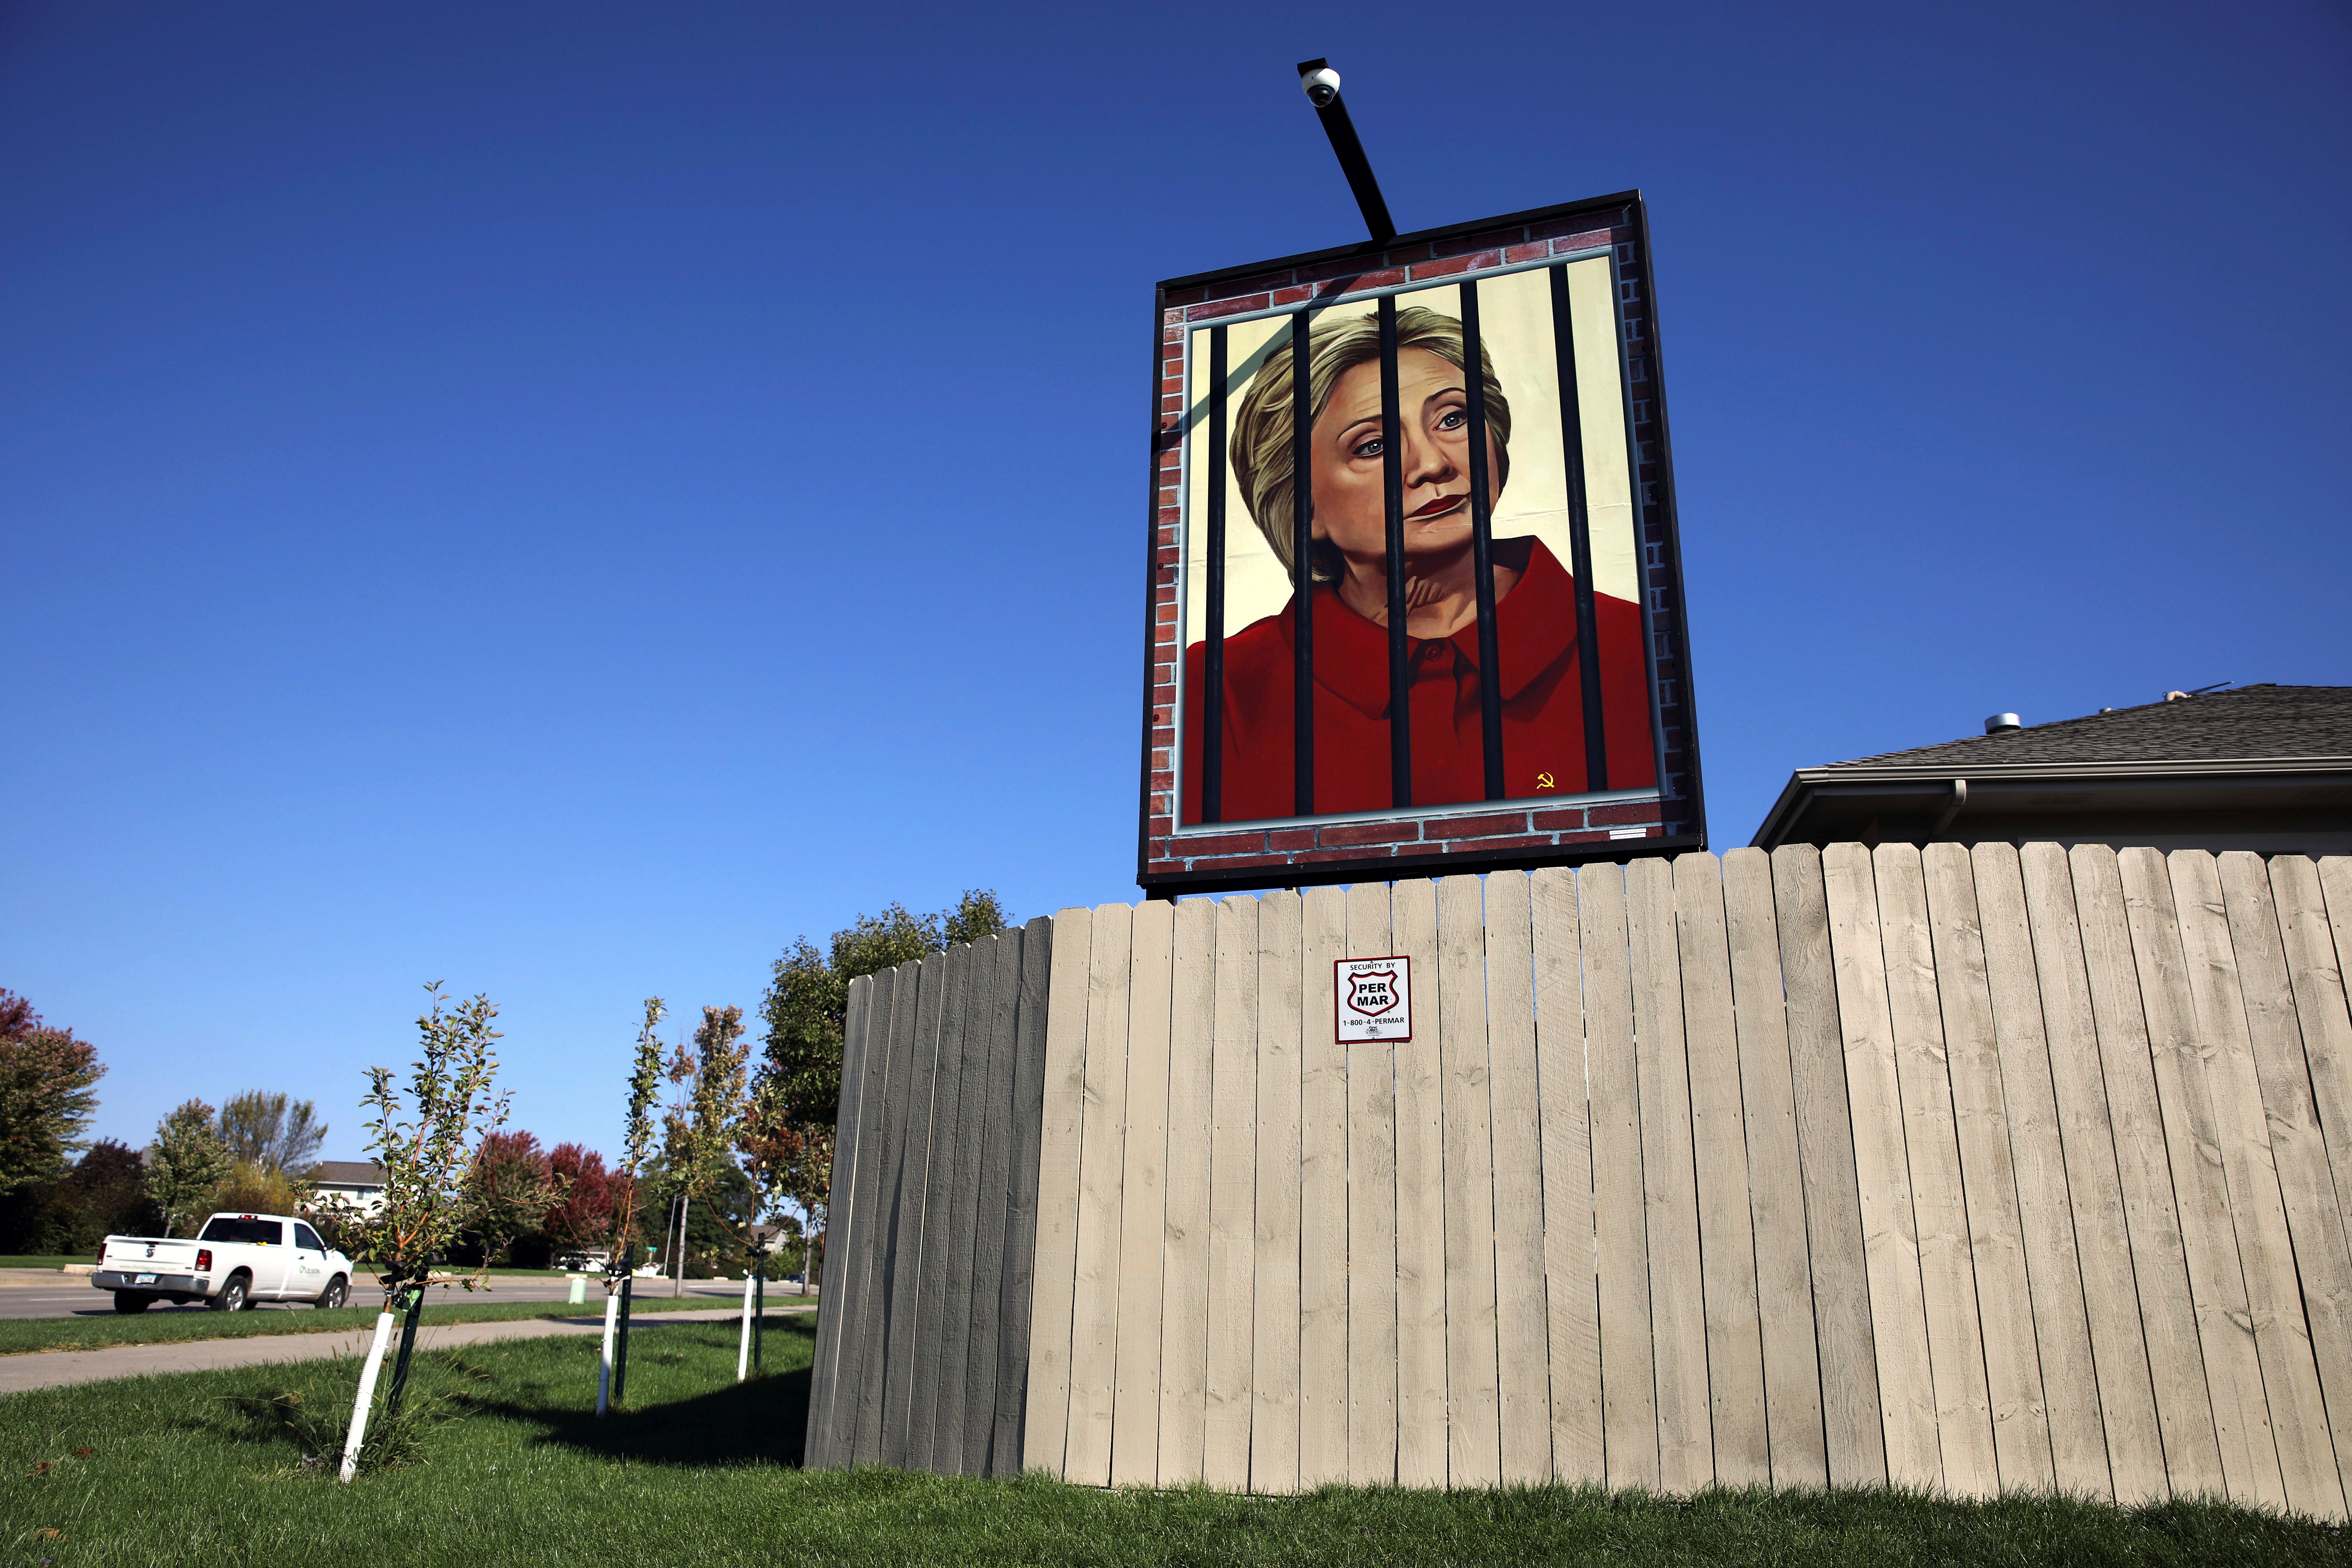 A poster depicting U.S. Democratic presidential candidate Hillary Clinton behind bars hangs in the yard of George Davey in West Des Moines, Iowa, Oct. 11, 2016.